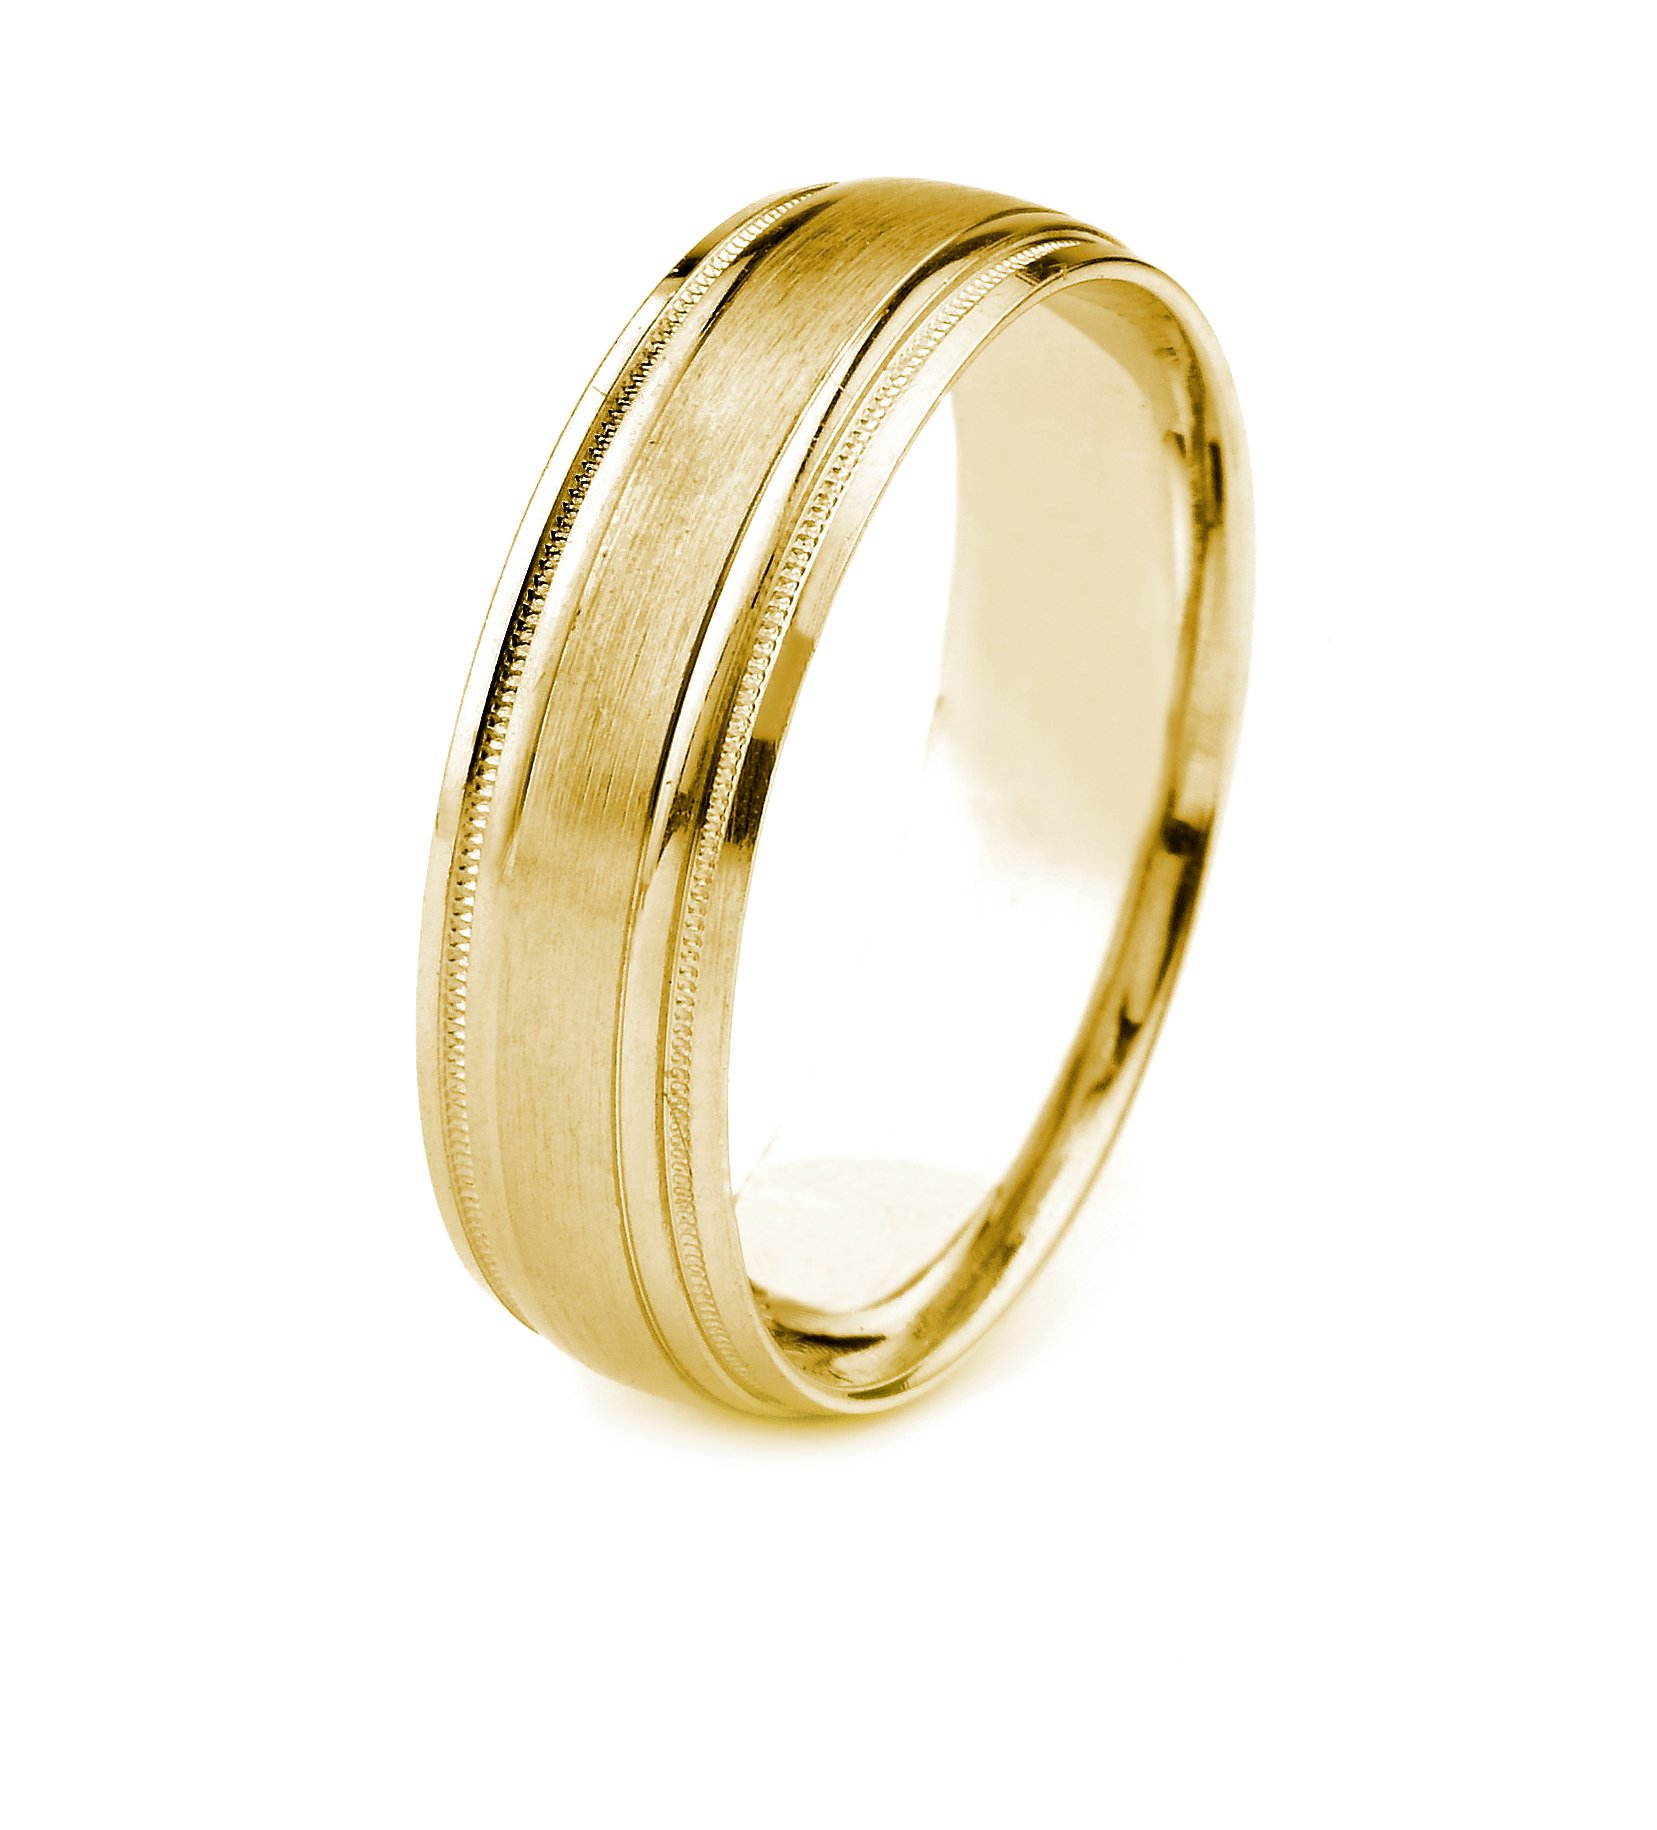 10k Gold Men's Wedding Band with Satin Finish and Carved Milgrain Edges (6mm)